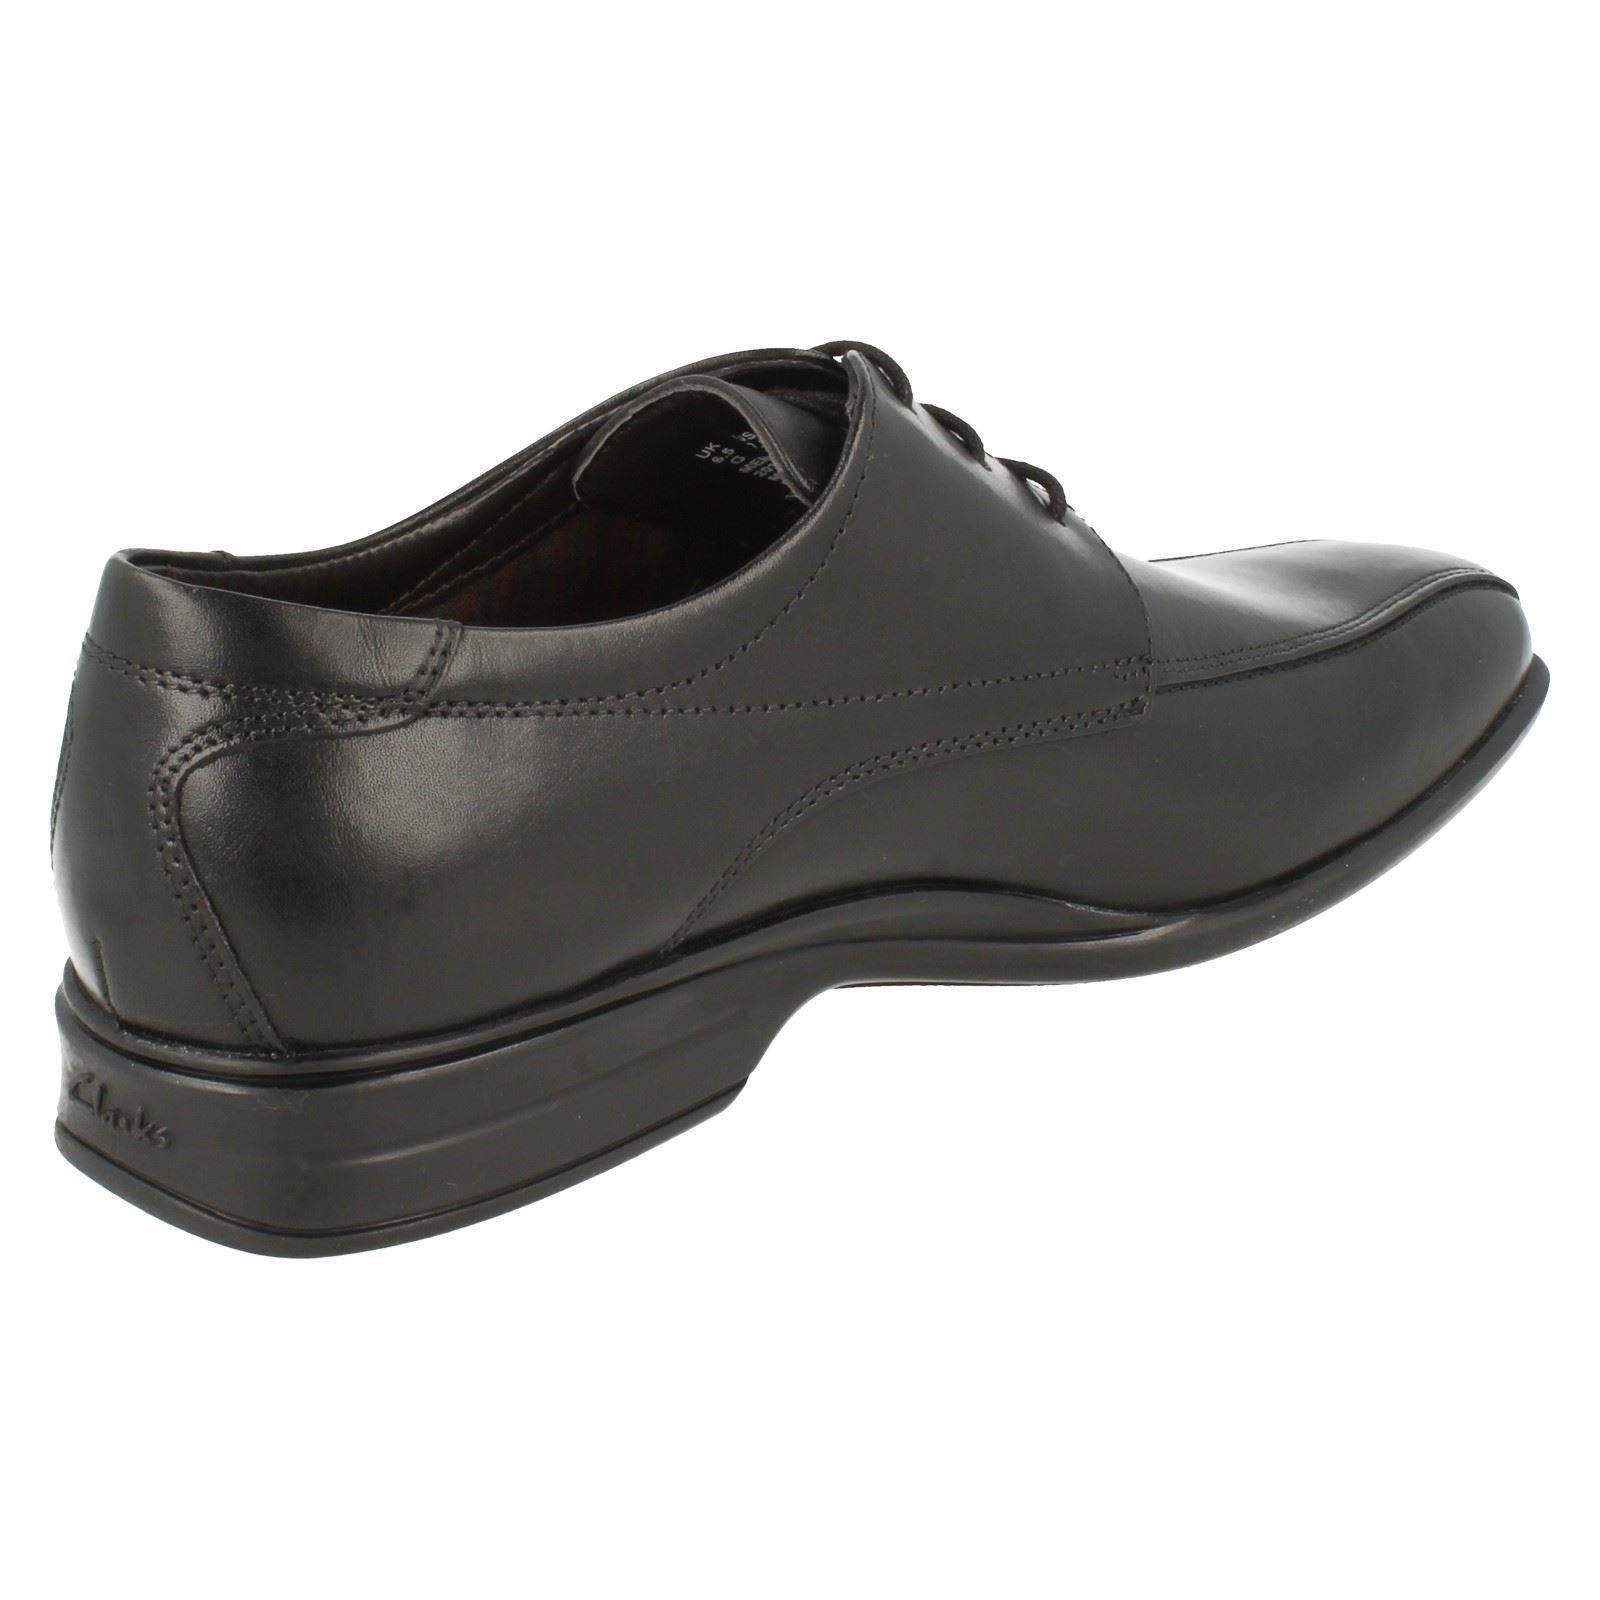 Mens Clarks Lace Up Leder Smart Formal Schuhes Gadwell Gadwell Gadwell Over 992a72